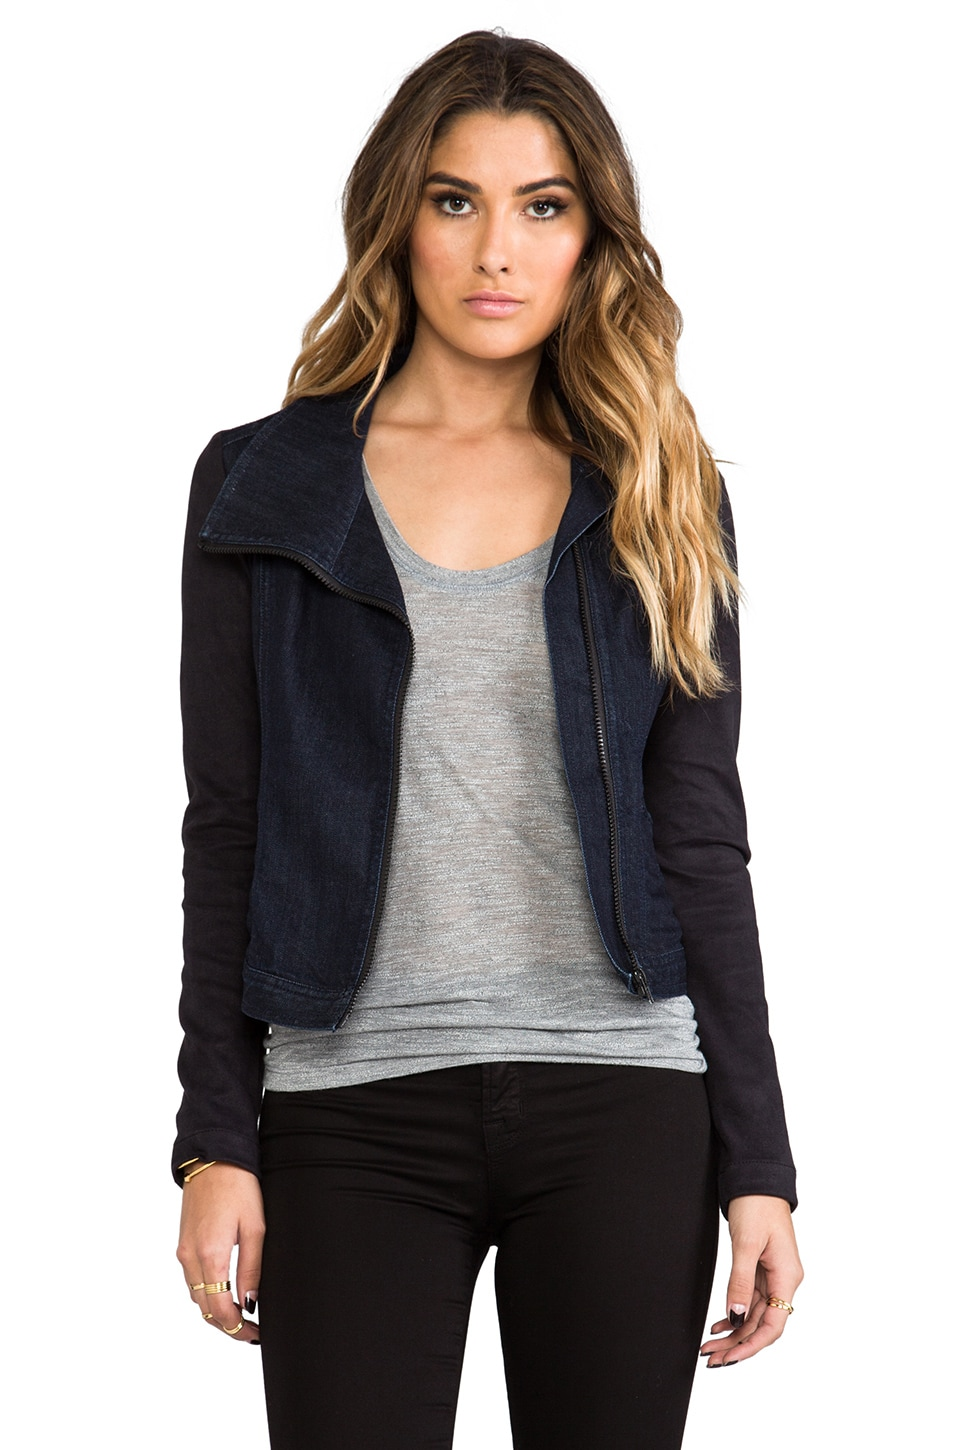 Level 99 Contrast Jacket in Empire